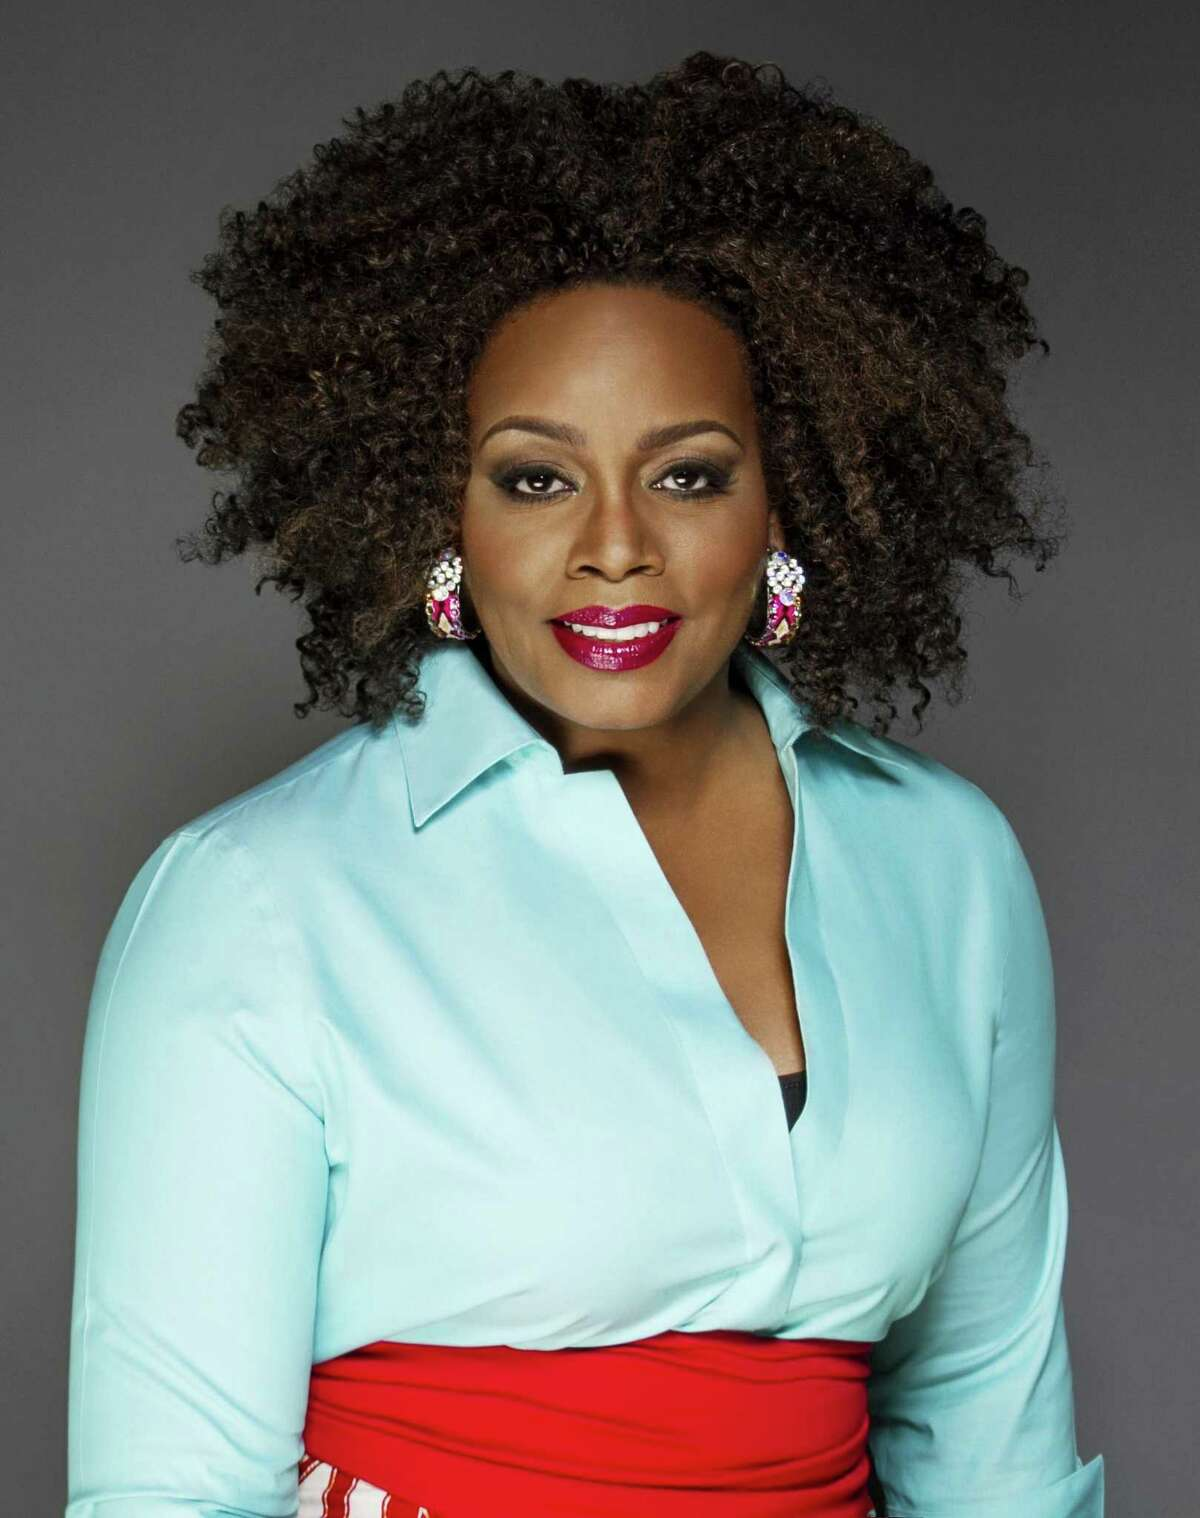 """Singer Dianne Reeves is set to perform at the Jorgensen Center for the Performing Arts in Storrs on Saturday, Feb. 17.Reeves is considered the pre-eminent jazz vocalist in the world today. Her recent recording, ?""""Beautiful Life?"""", with five Grammy Awards for Best Jazz Vocal Album, epitomizes the spirit of her storied and extraordinary career, traversing many genres and collaborating with a diverse collection of artists. Adored worldwide by audiences and critics alike, Reeves is a natural wonder not to be missed. To purchase tickets or for more information, call the Jorgensen box office at 860-486-4226 or visit www.jorgensen.uconn.edu"""